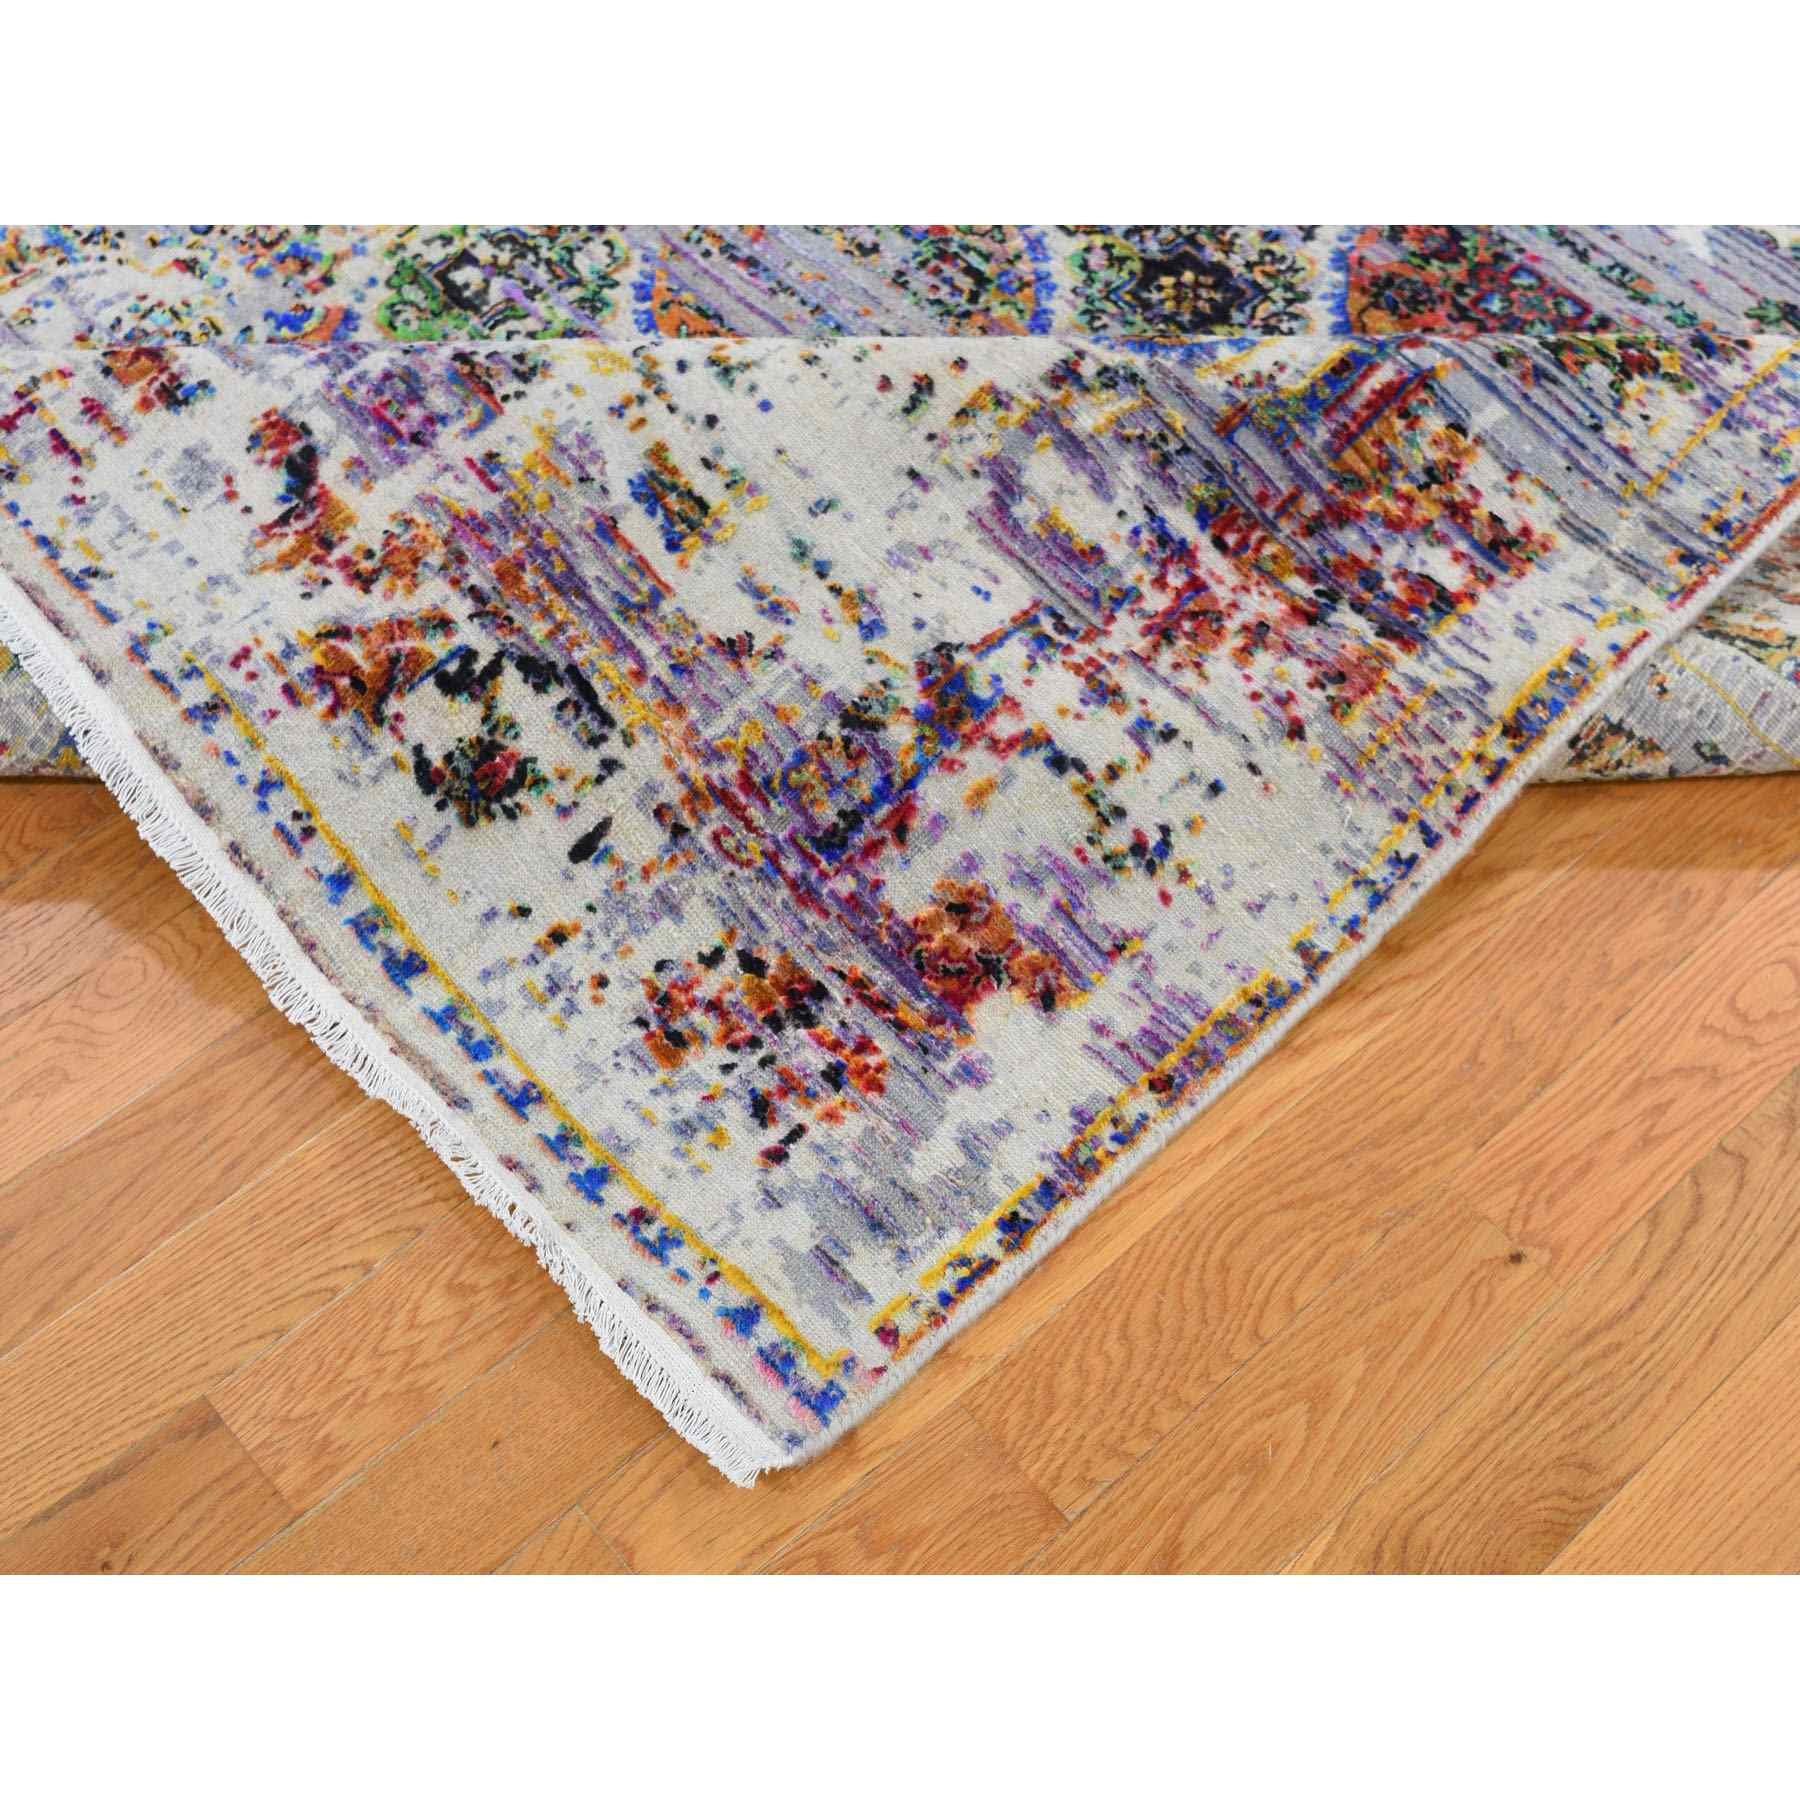 Modern-and-Contemporary-Hand-Knotted-Rug-234700